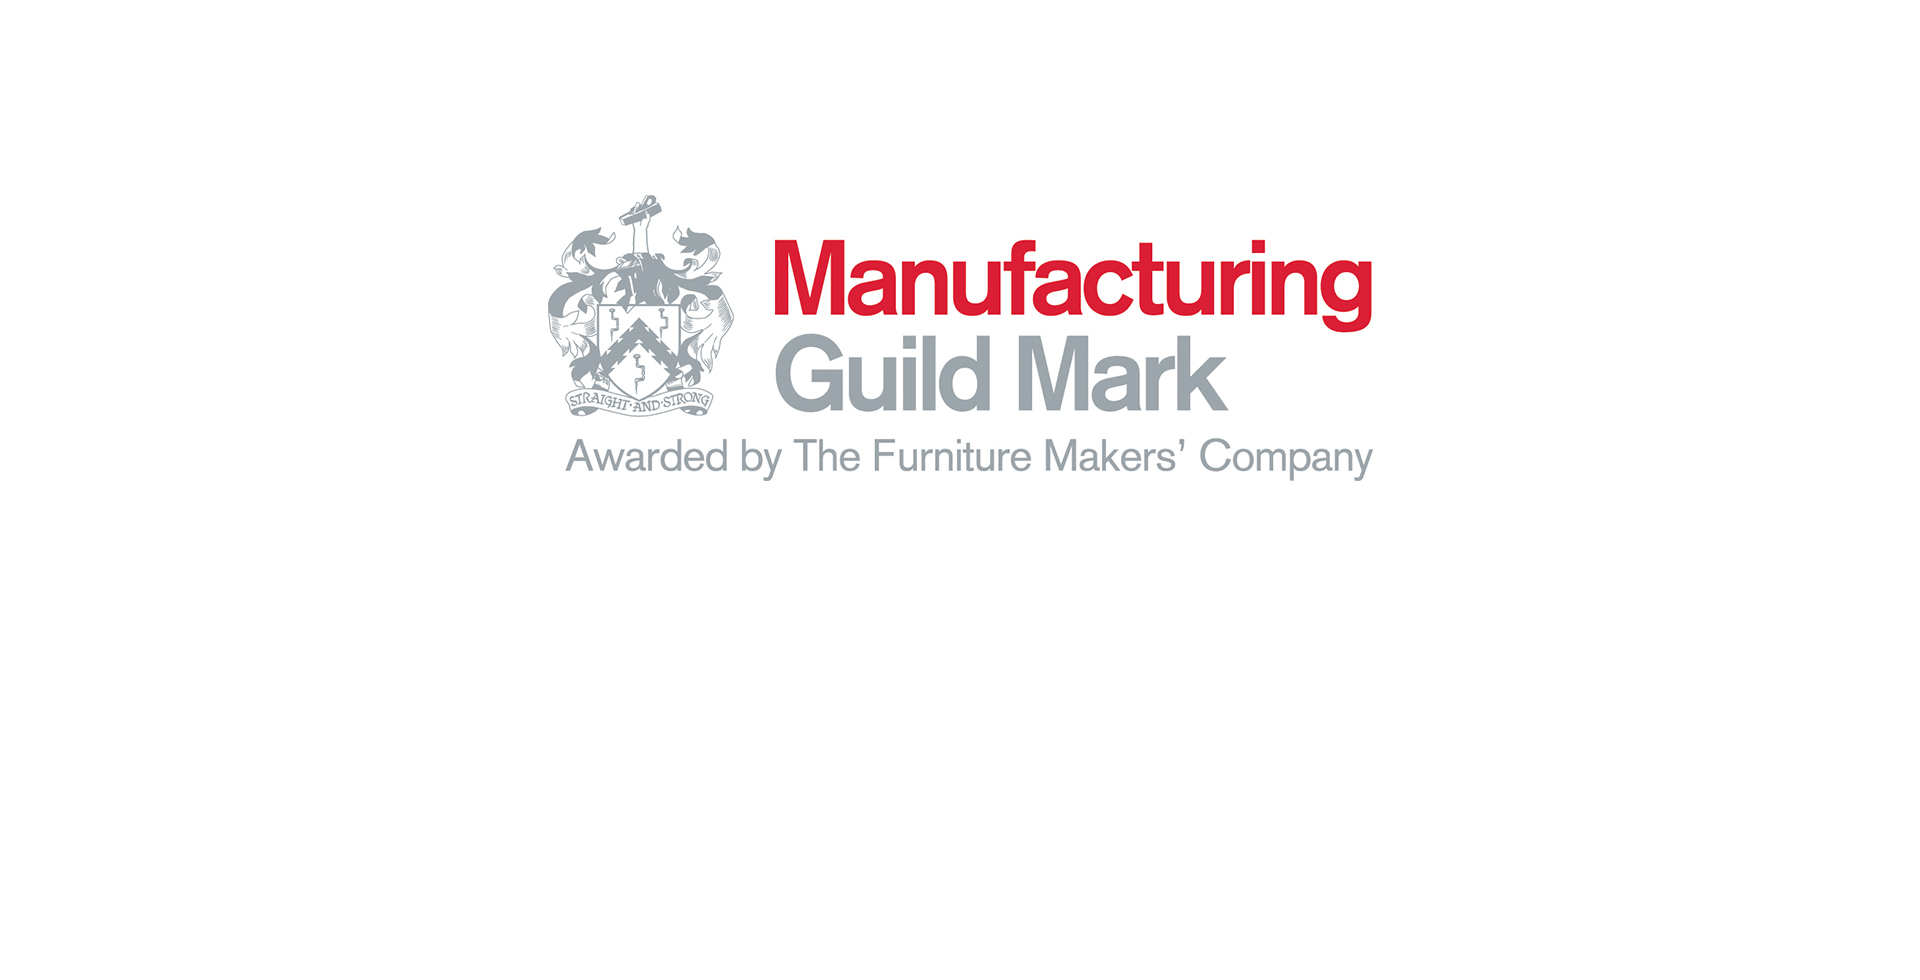 The Manufacturing Guild Mark open day